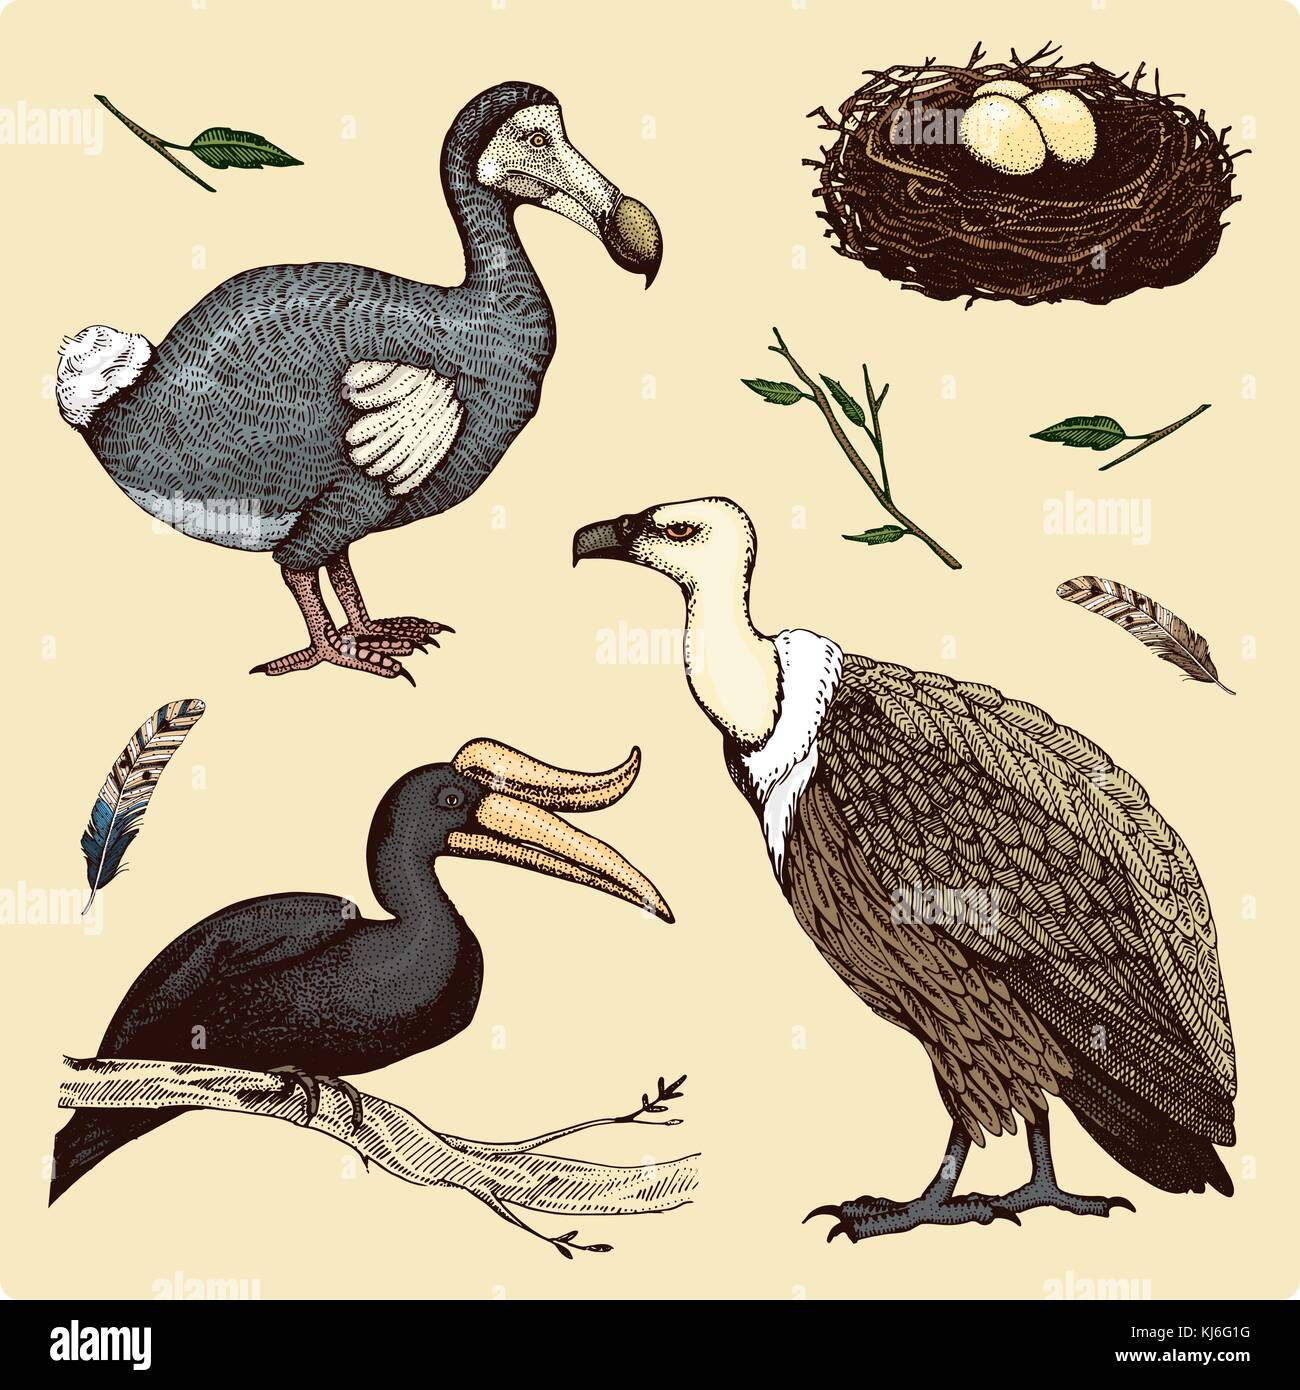 extinct species birds, griffon vultures, rhinoceros hornbill. moa, dodo and feather. engraved hand drawn in old - Stock Image